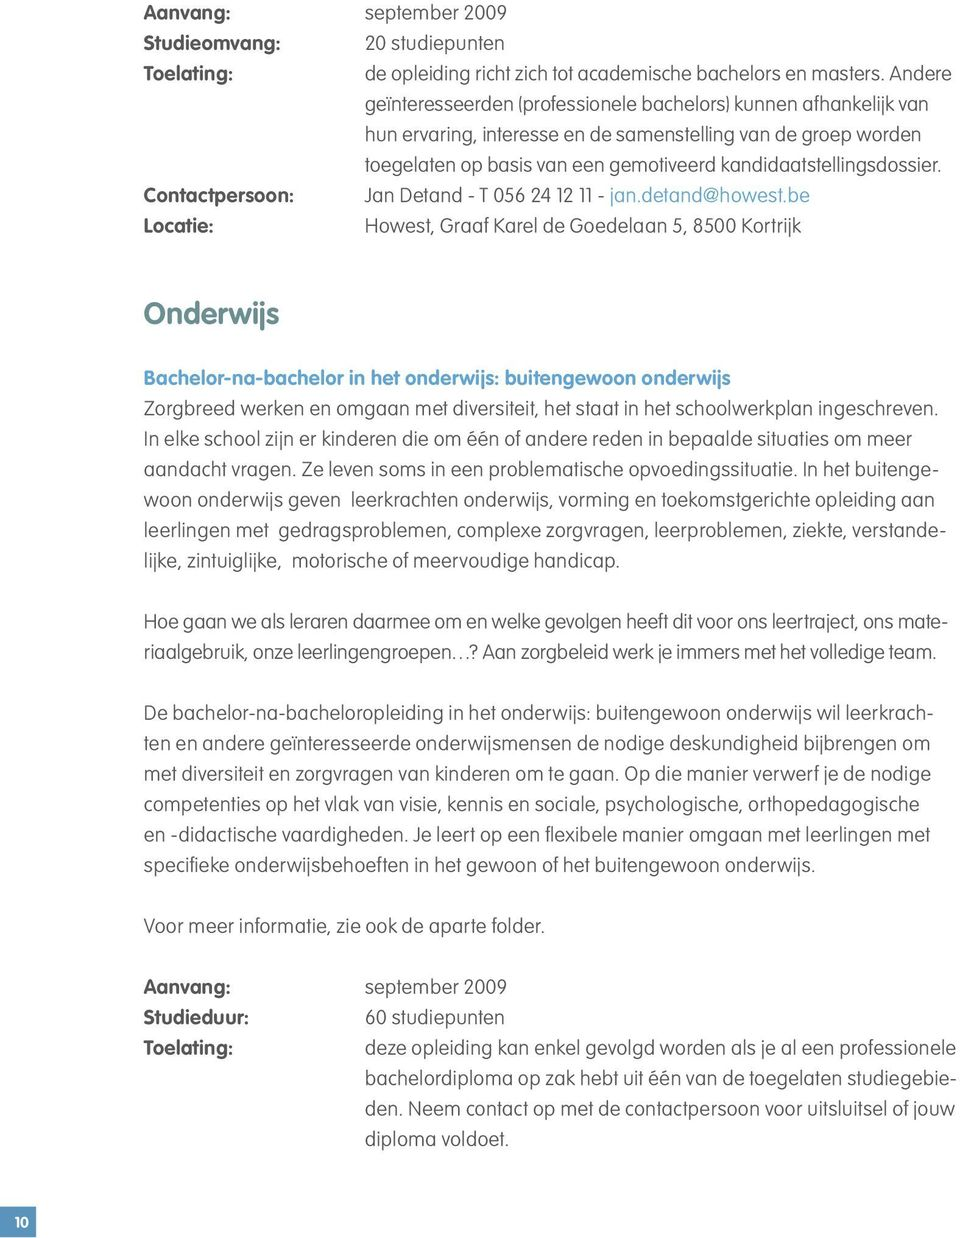 kandidaatstellingsdossier. Contactpersoon: Jan Detand - T 056 24 12 11 - jan.detand@howest.